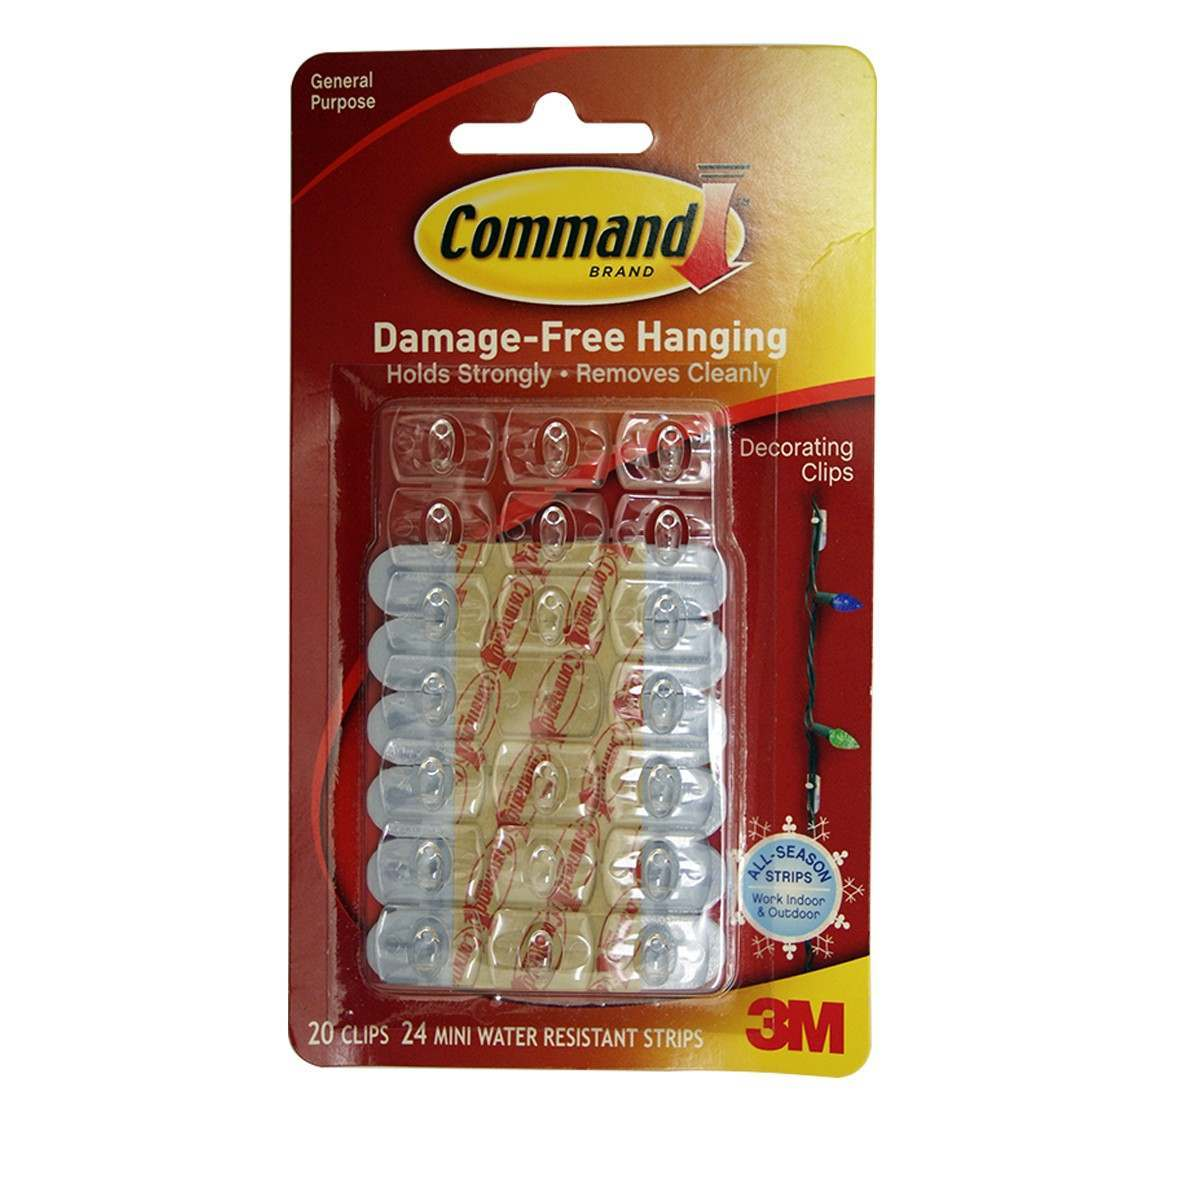 3M Command Outdoor Decorating Clips